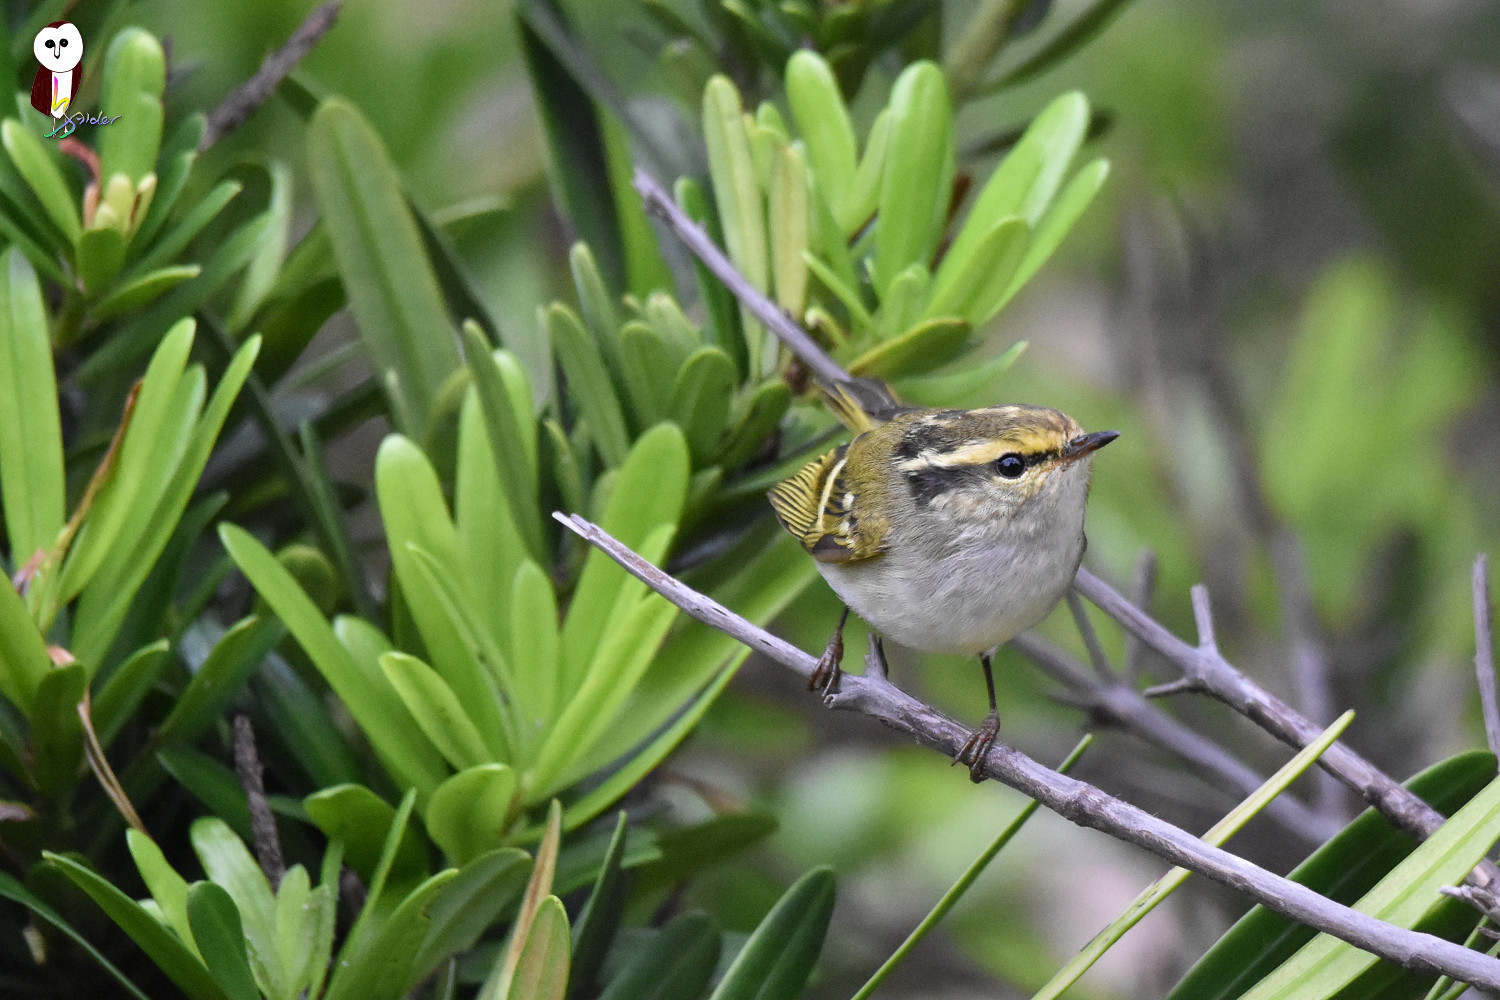 Yellow-browed_Warbler_6343